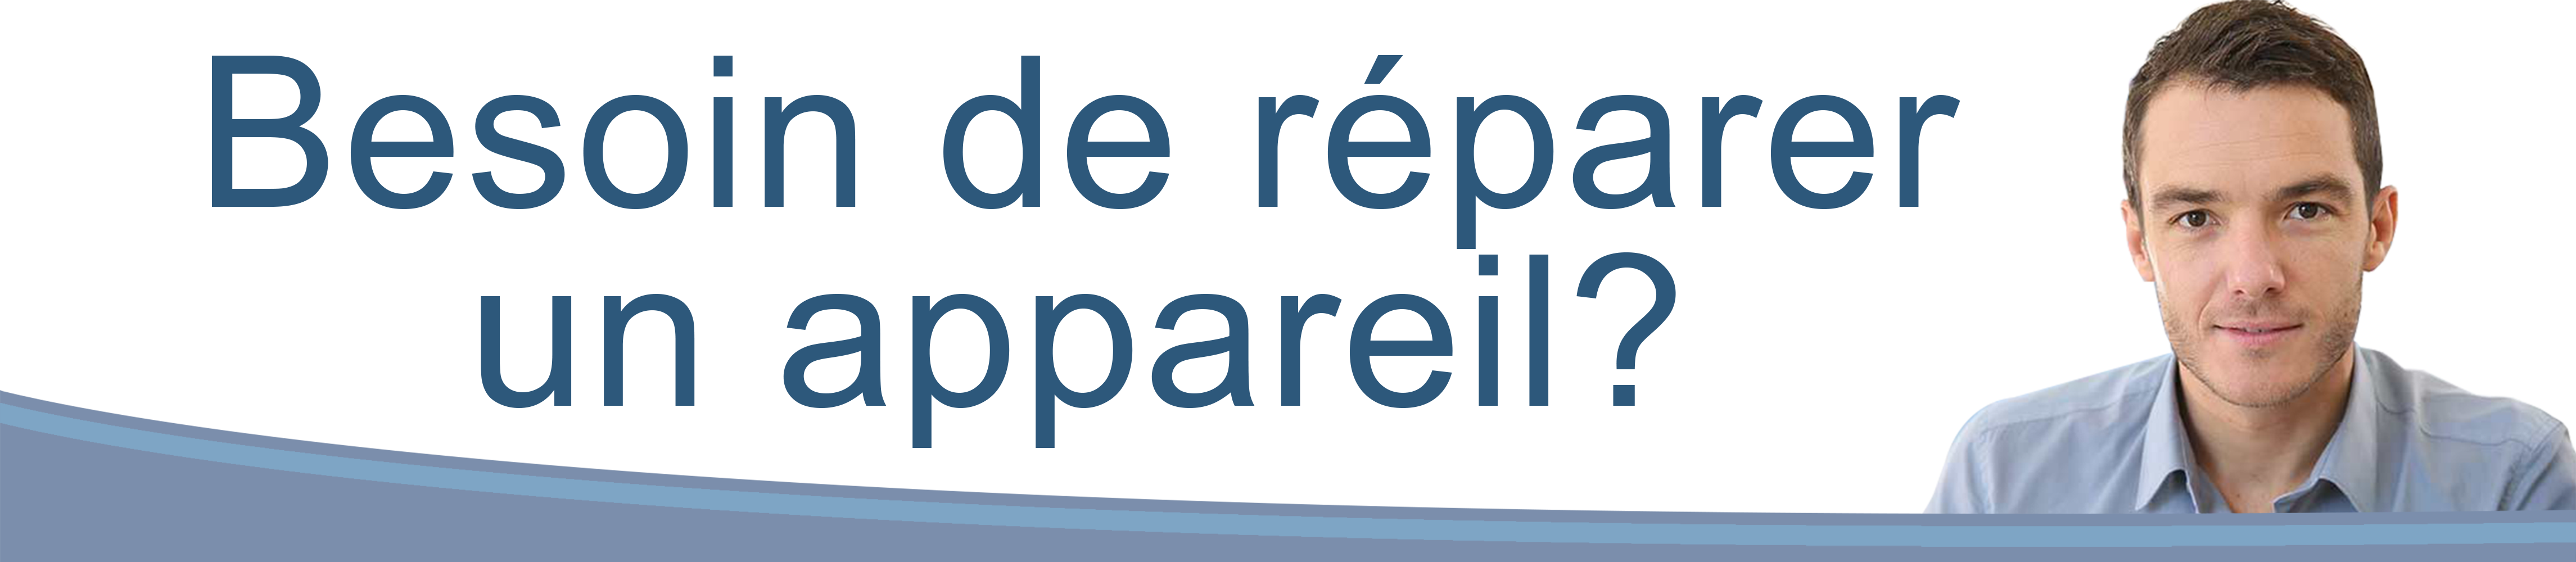 NetLantique-IT-needHelp-Apareil-Repair-Cell-fr